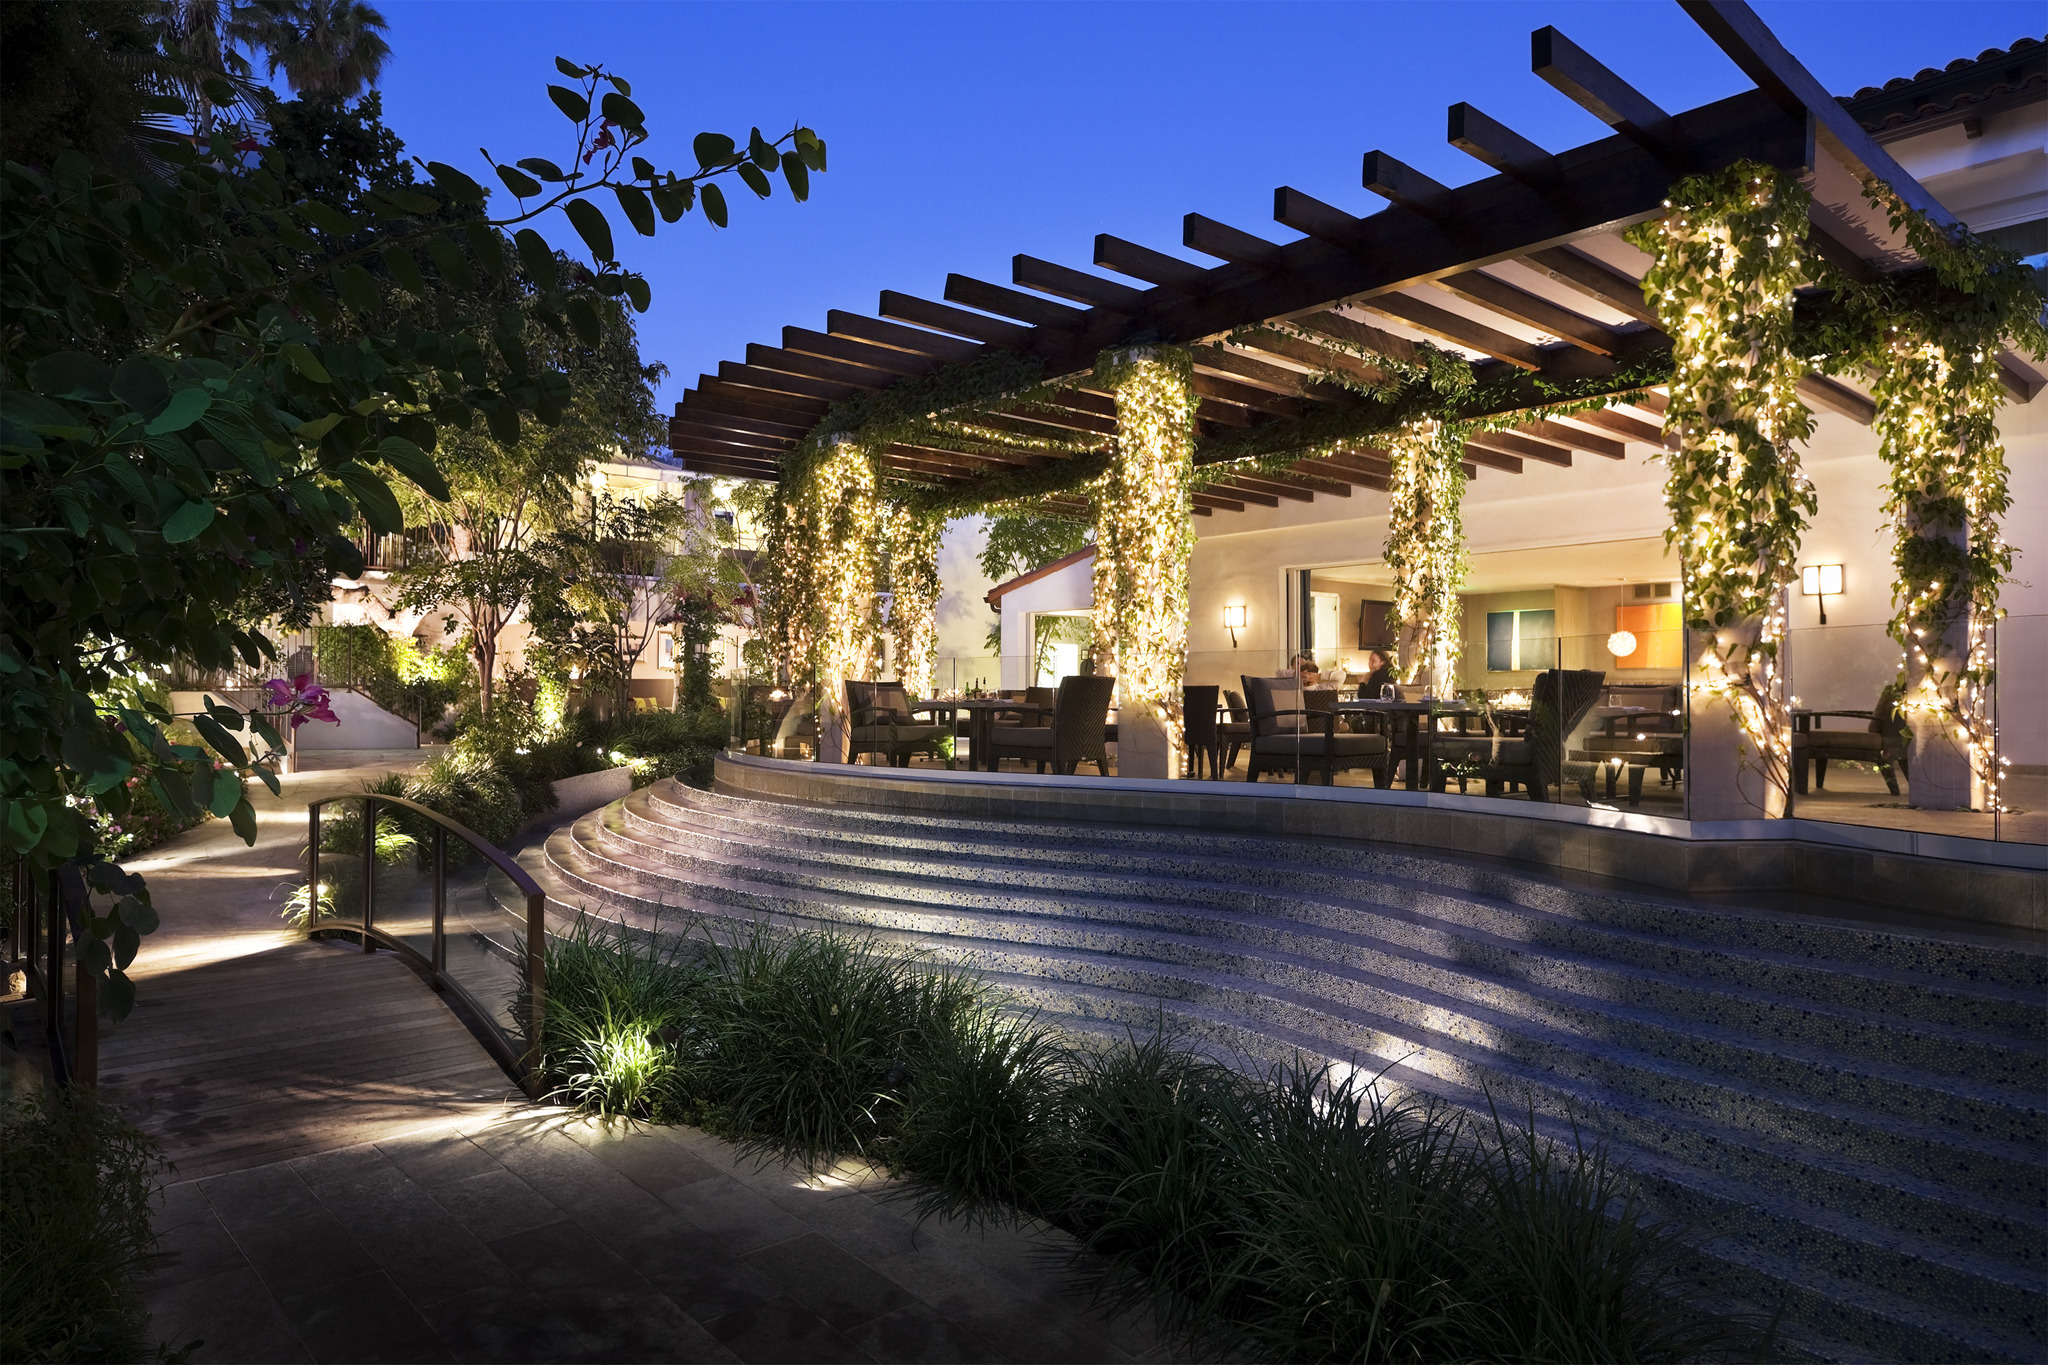 Best Hotel To Stay In West Hollywood